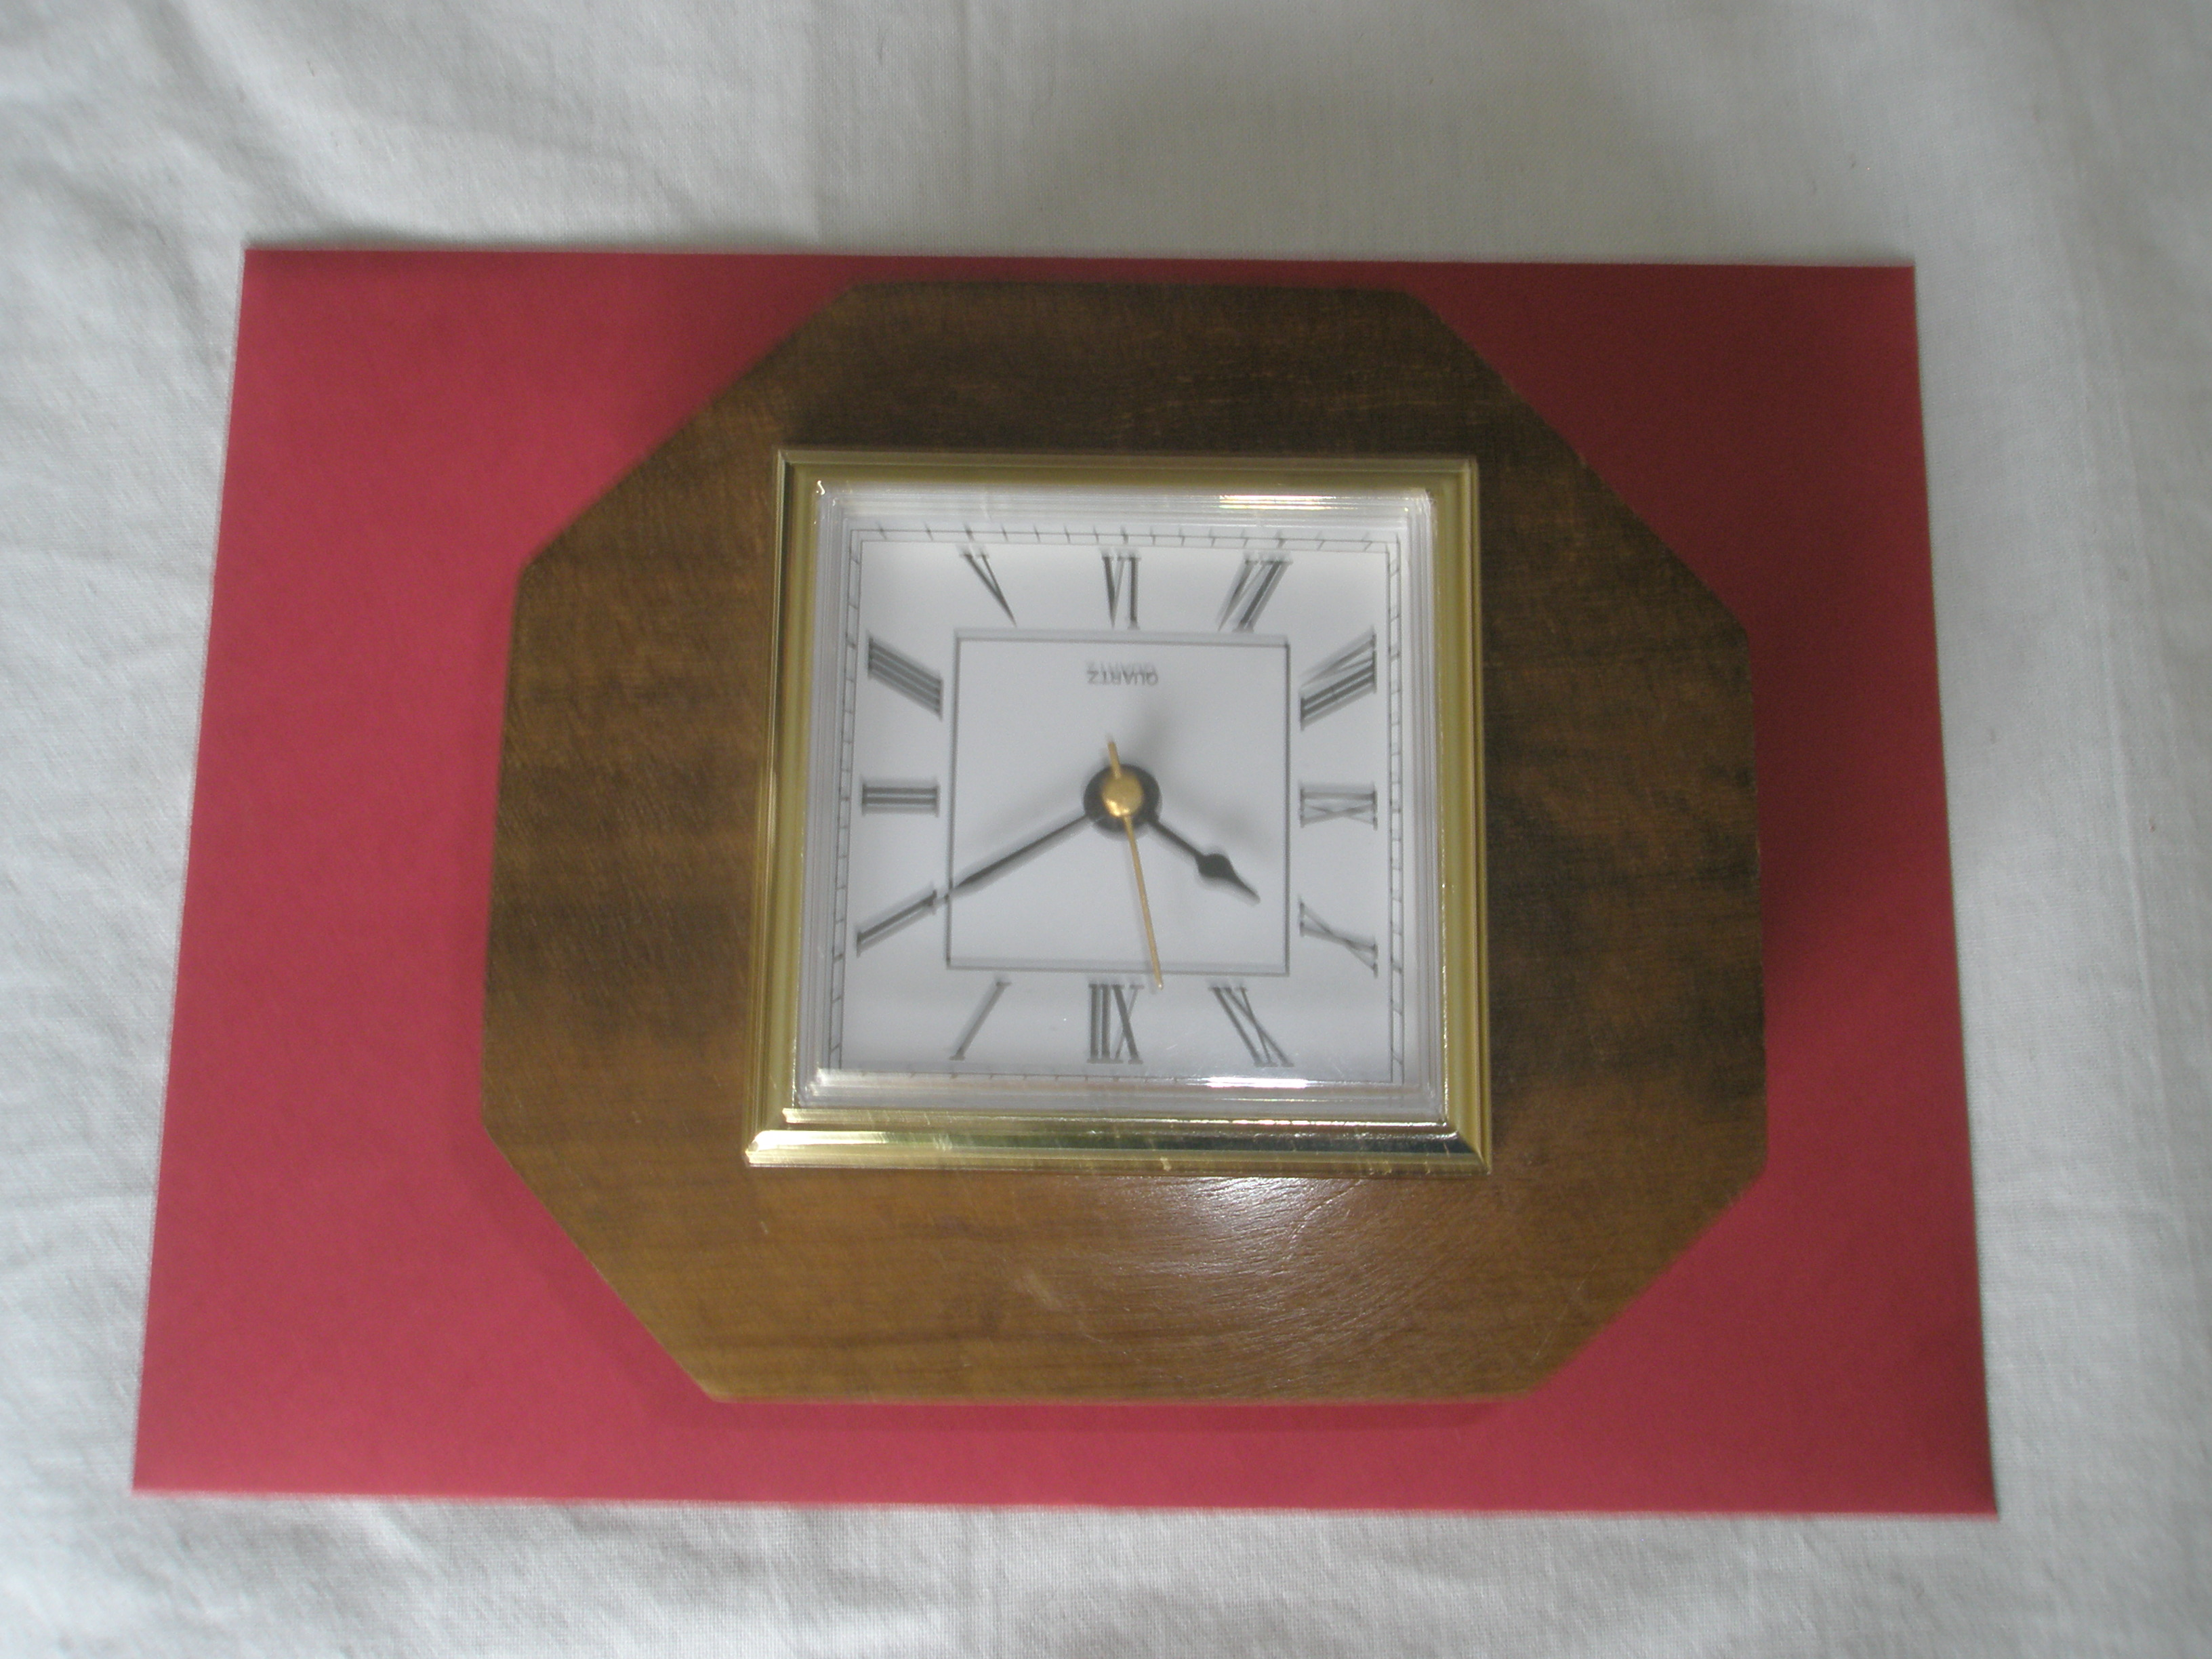 A table top Square white face clock with black numerals inserted on a round Mahogany base